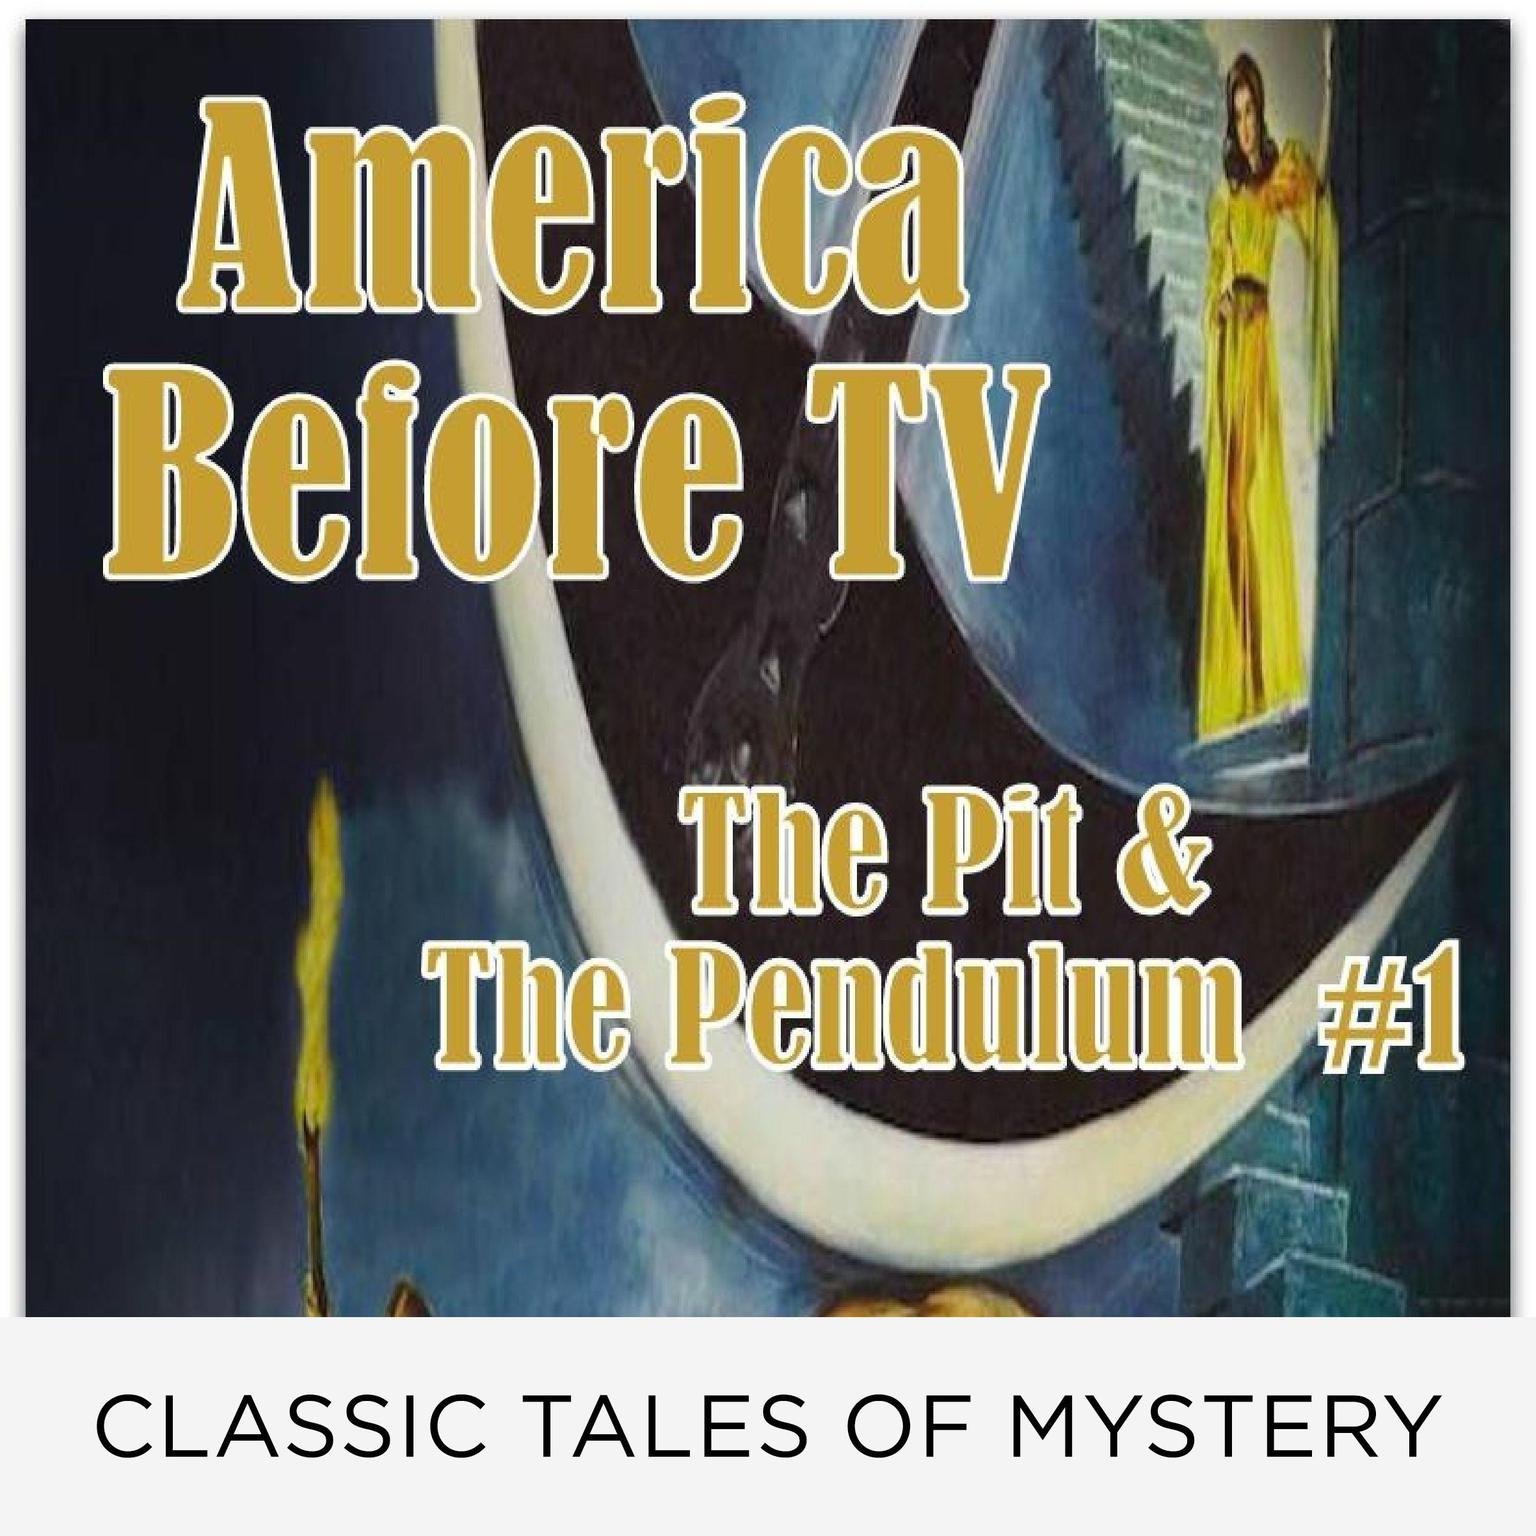 Printable America Before TV - The Pit & The Pendulum  #1 Audiobook Cover Art